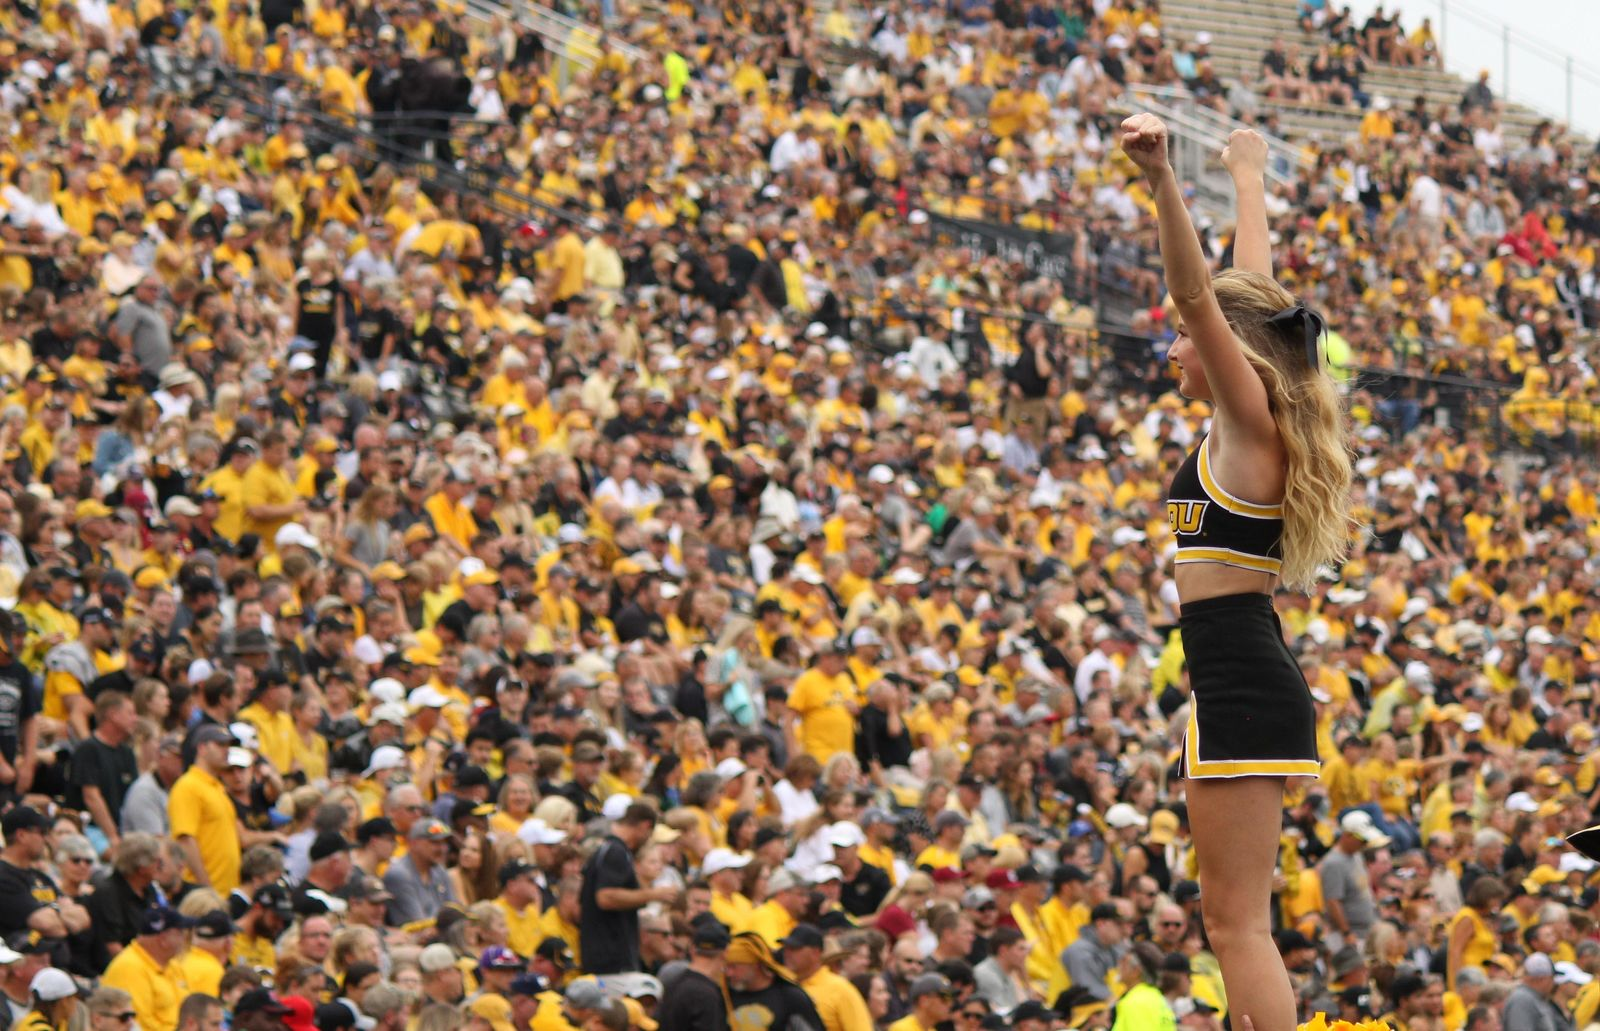 A Mizzou cheerleader stands tall during a celebration{ }Saturday afternoon at Faurot Field in Columbia during the Tigers' 34-14 win over South Carolina. (Noah Brown/KRCG 13)